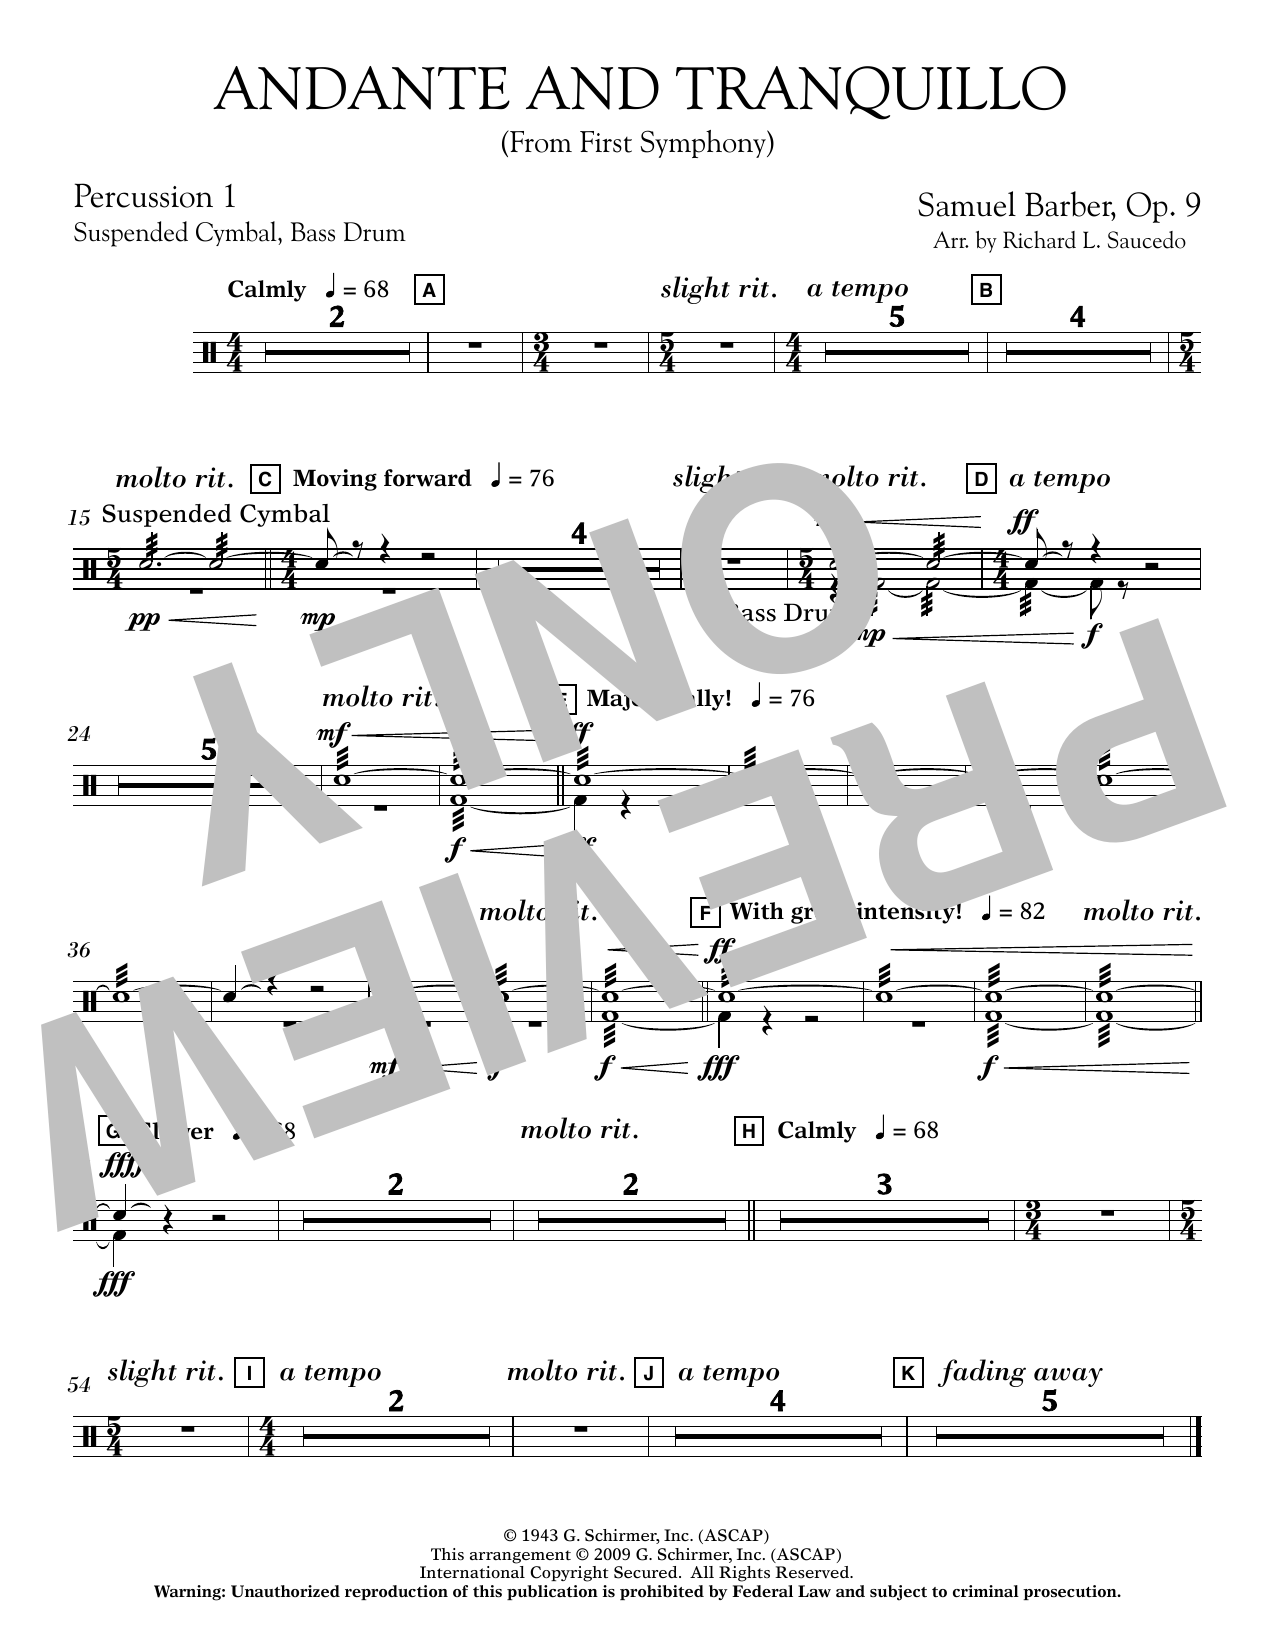 Andante and Tranquillo (from First Symphony) - Percussion 1 (Concert Band)